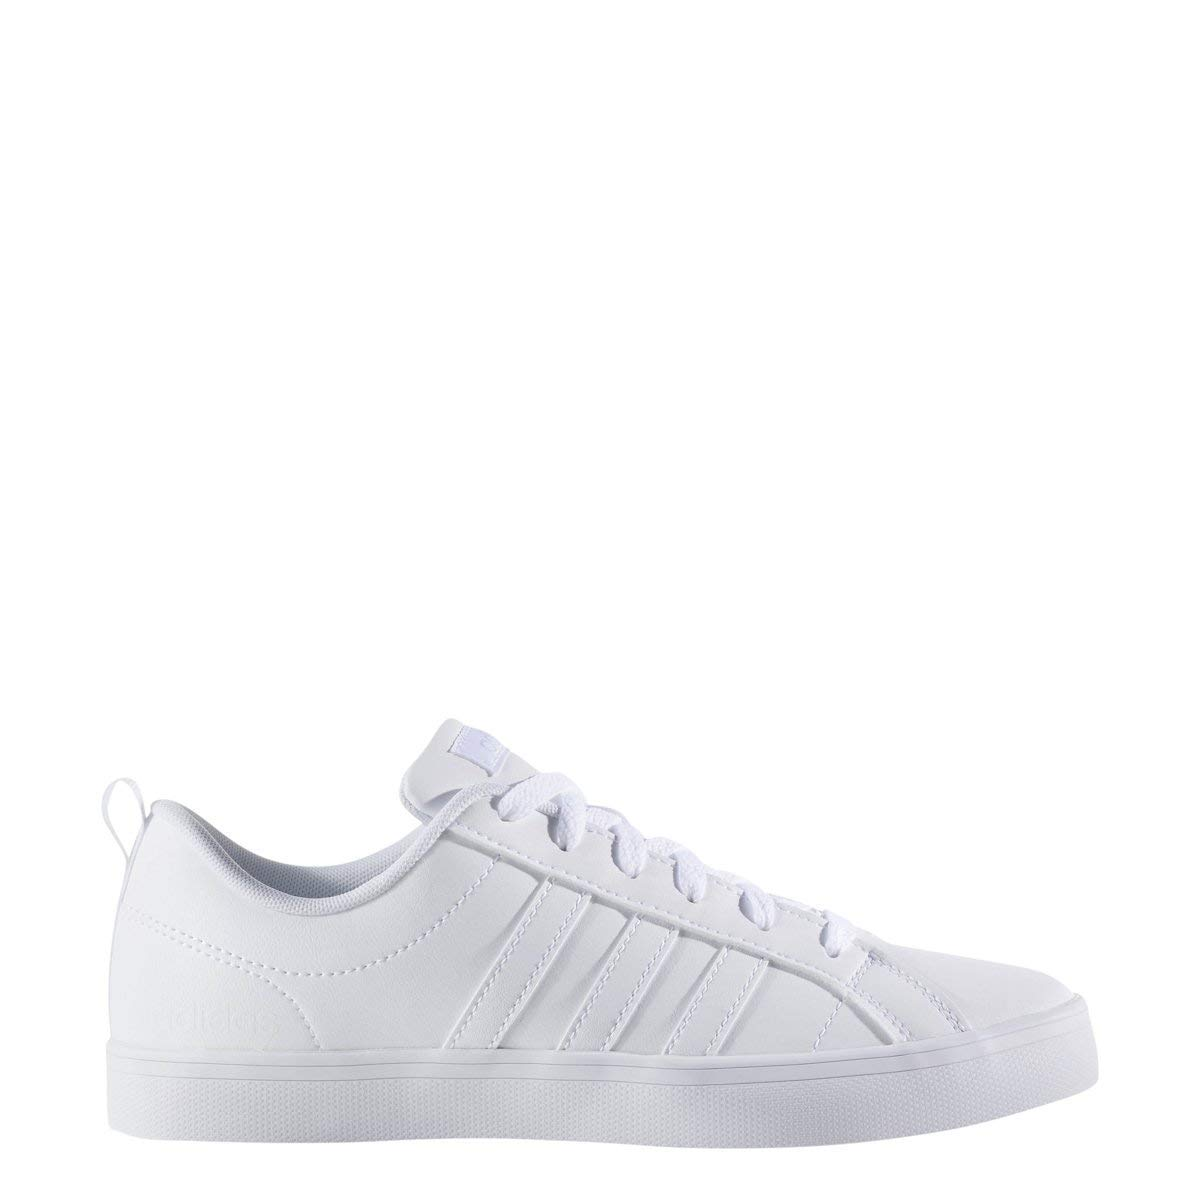 Adidas Neo 5 Performance Sneakers Black Casual Shoes